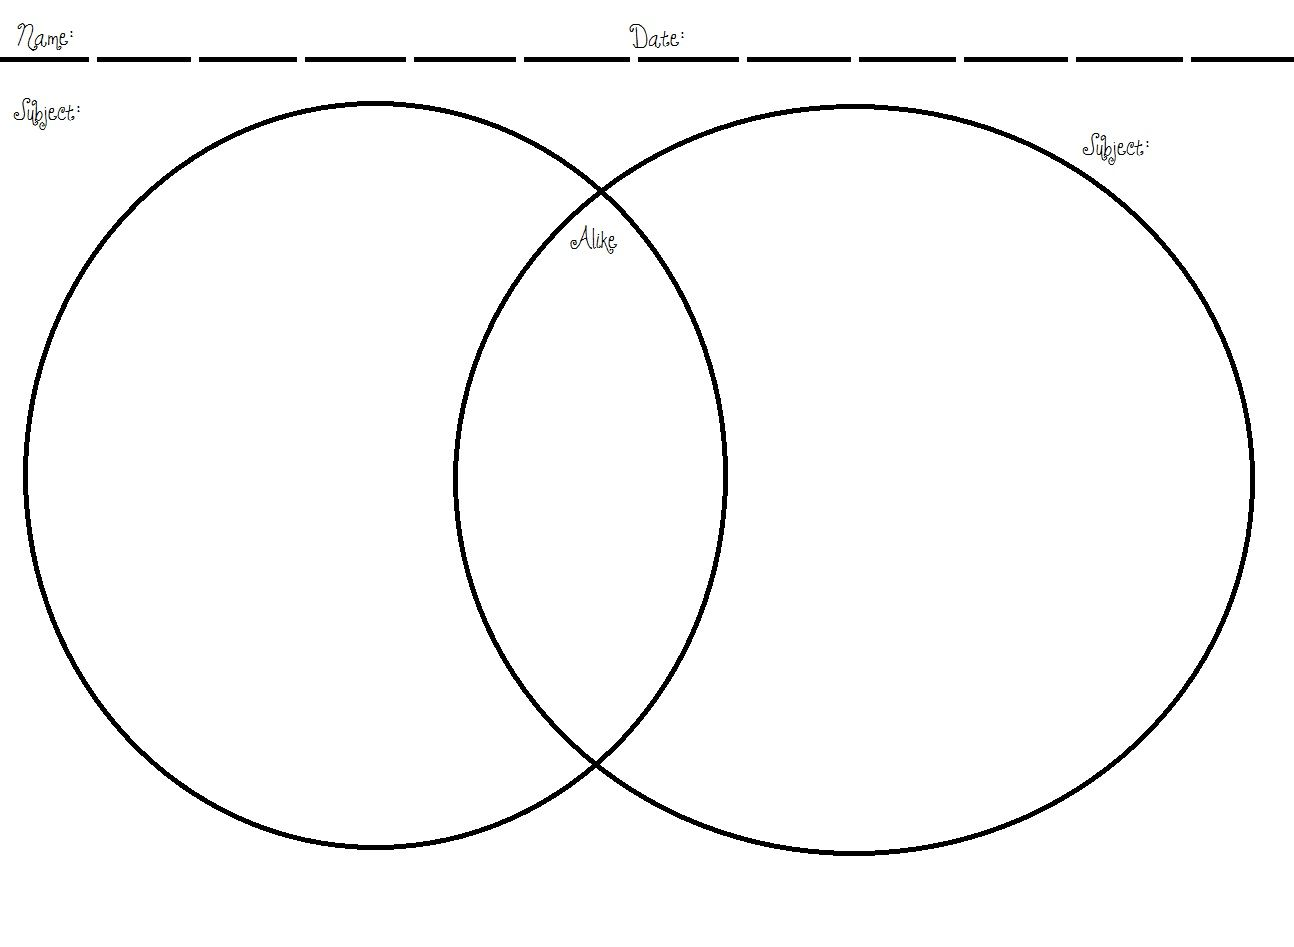 compare and contrast venn diagram | compare and contrast | pinterest